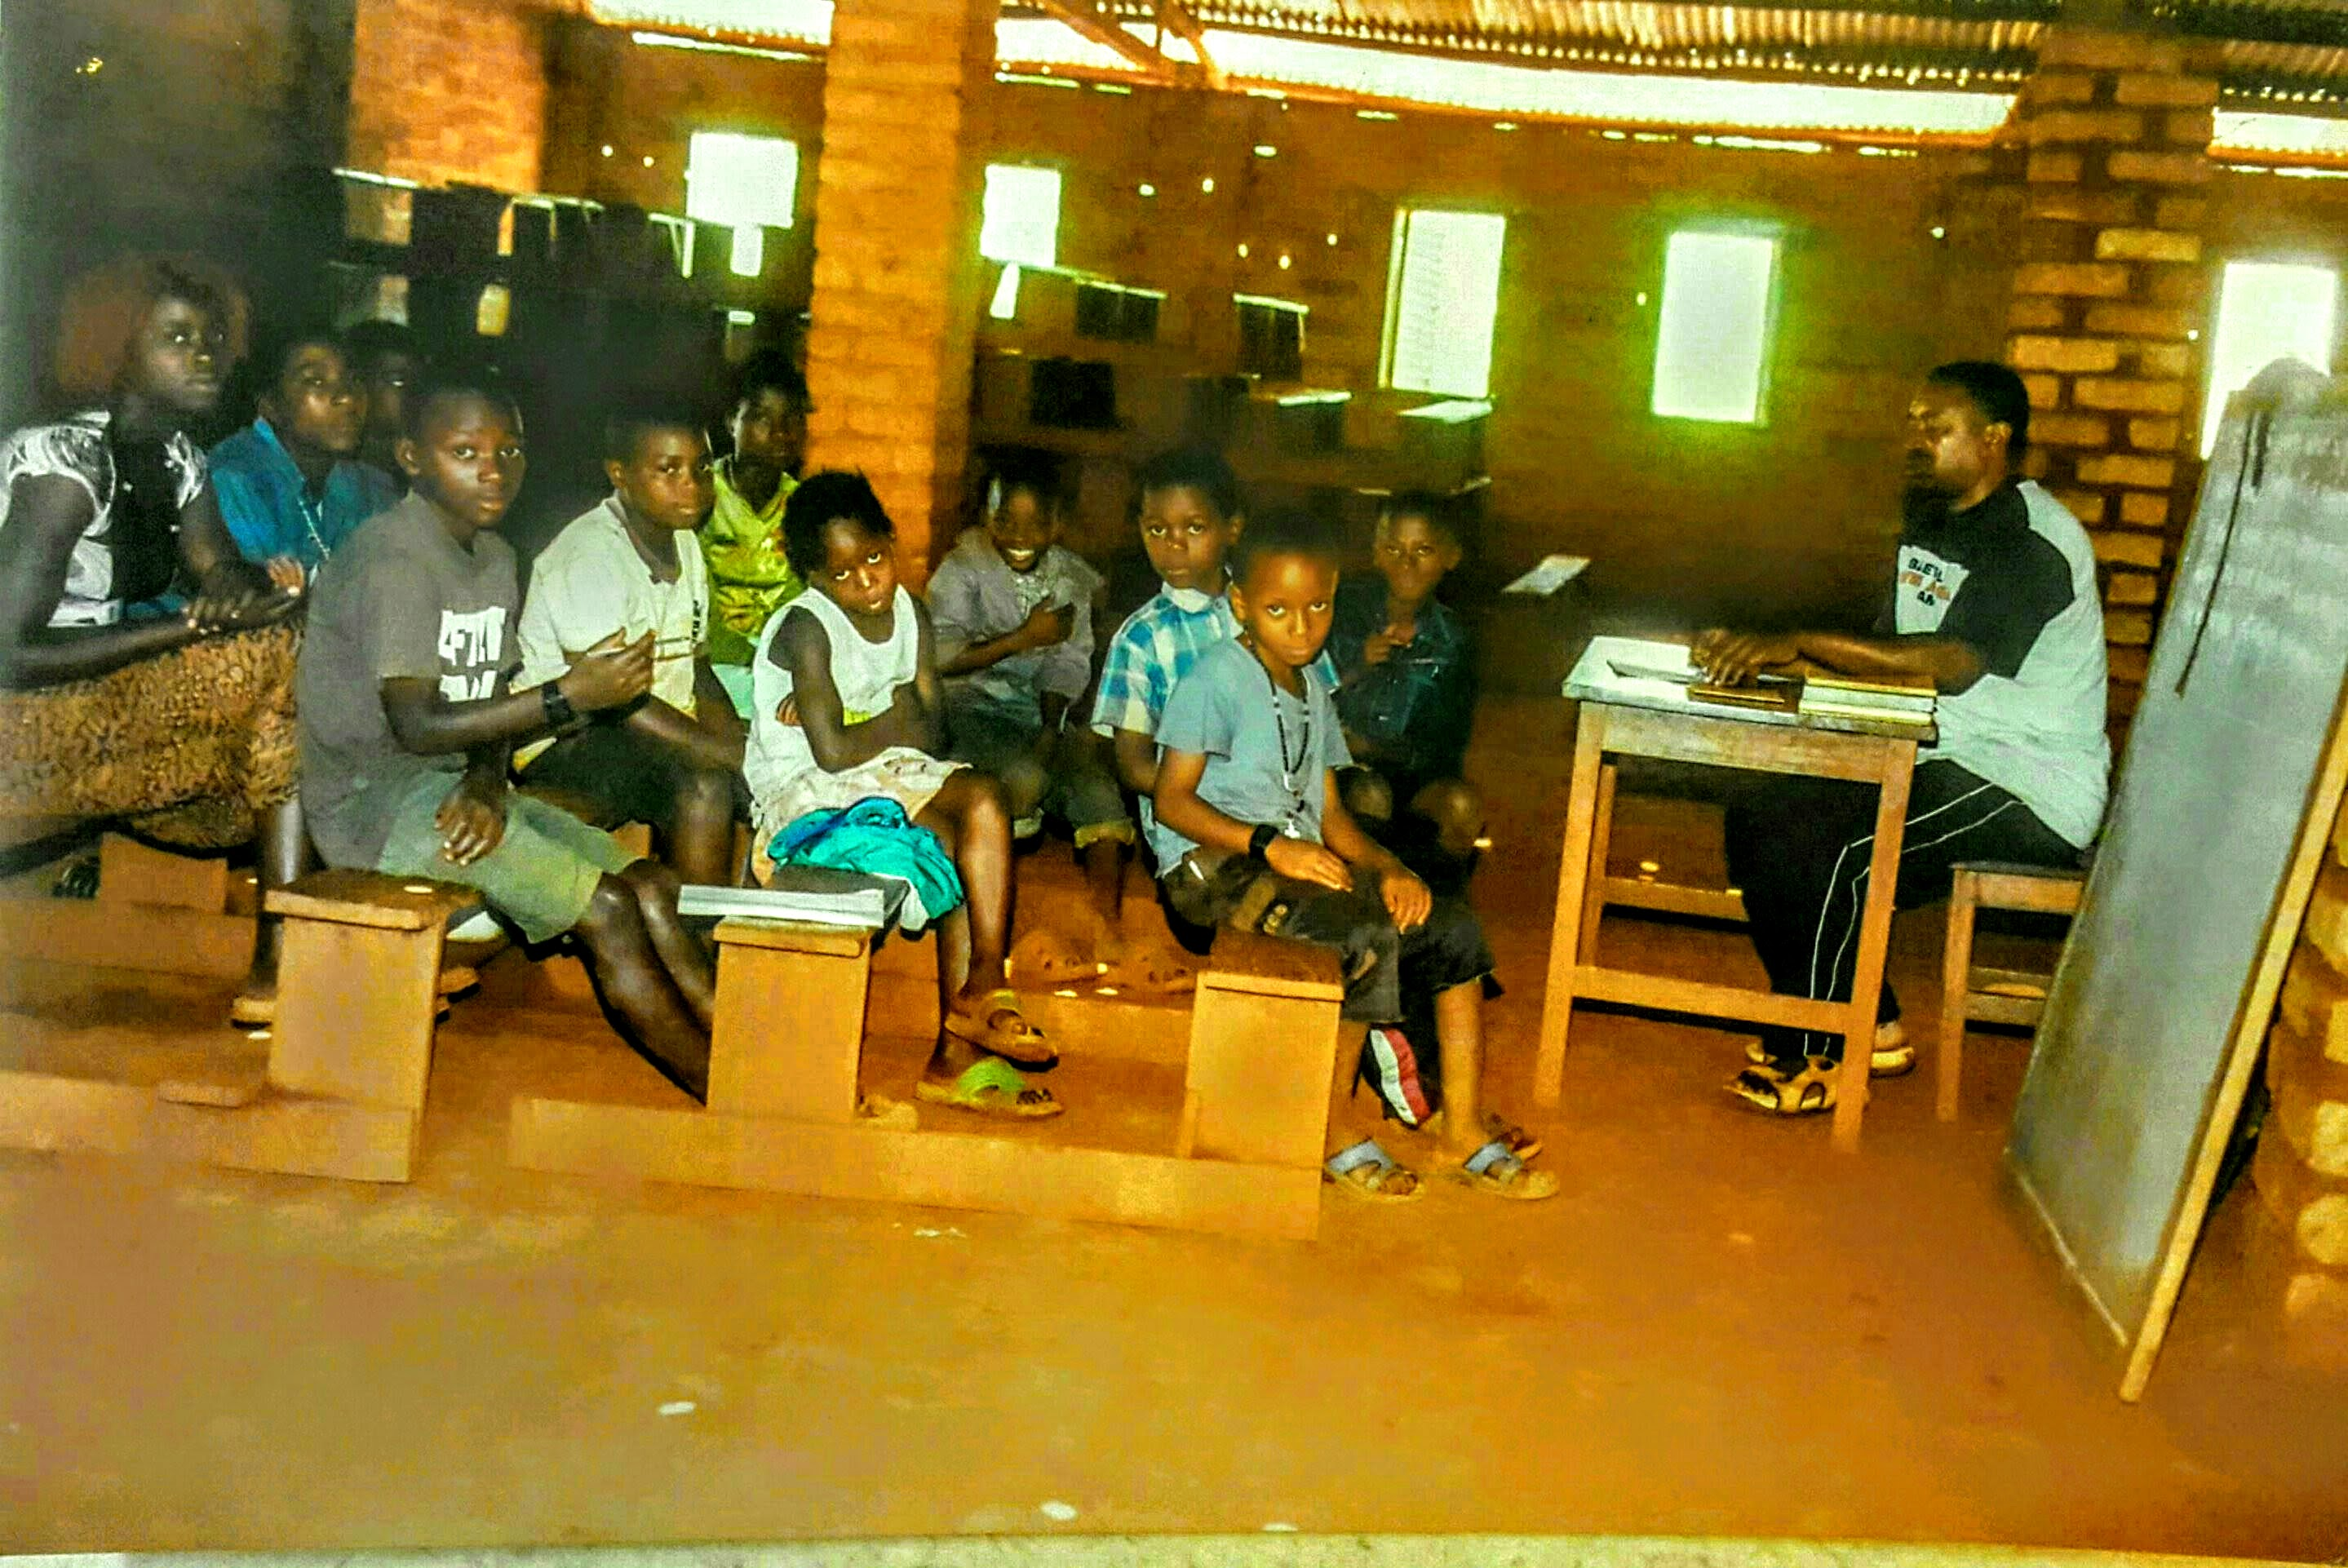 Built by a refugee, Enlight's edtech tool bets it can help students hope harder. Christel's classroom in Tanzania.